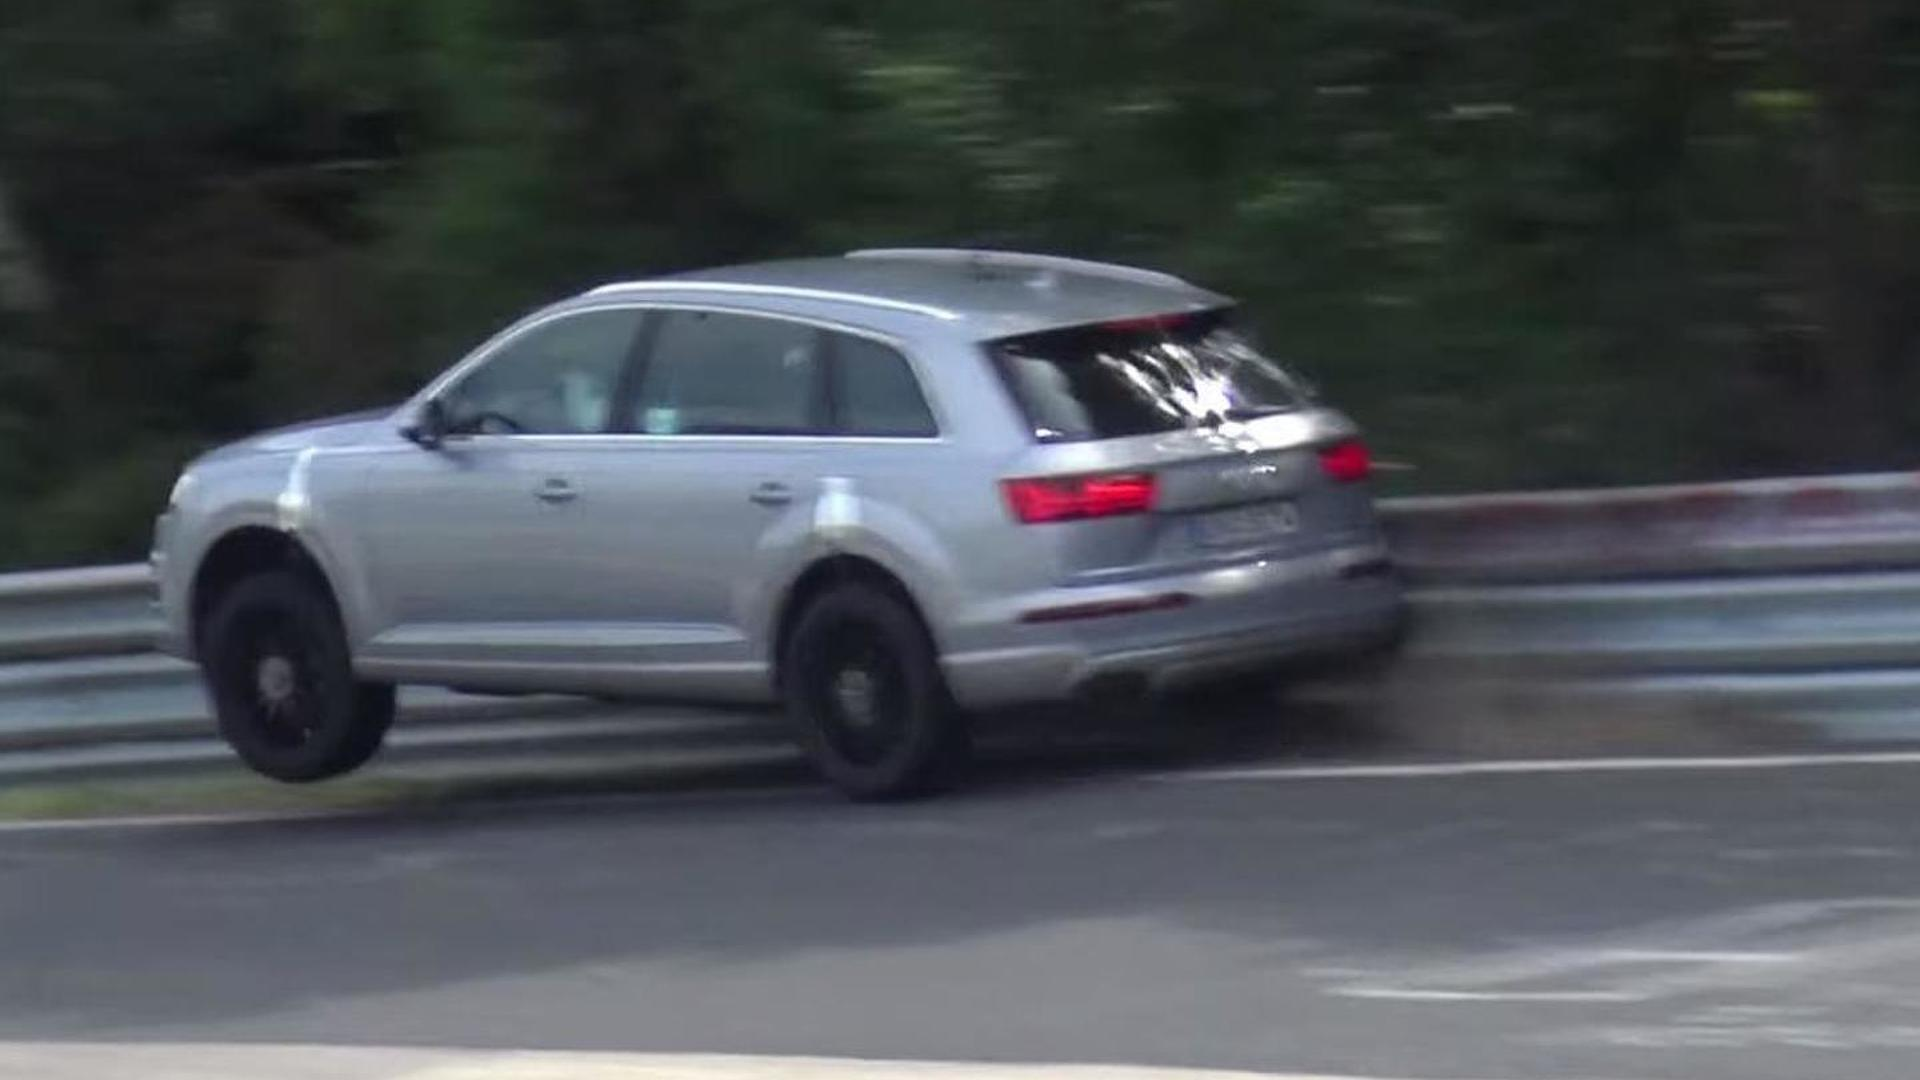 2016 Audi Sq7 Test Driver Pushes Too Hard And Hits Crash